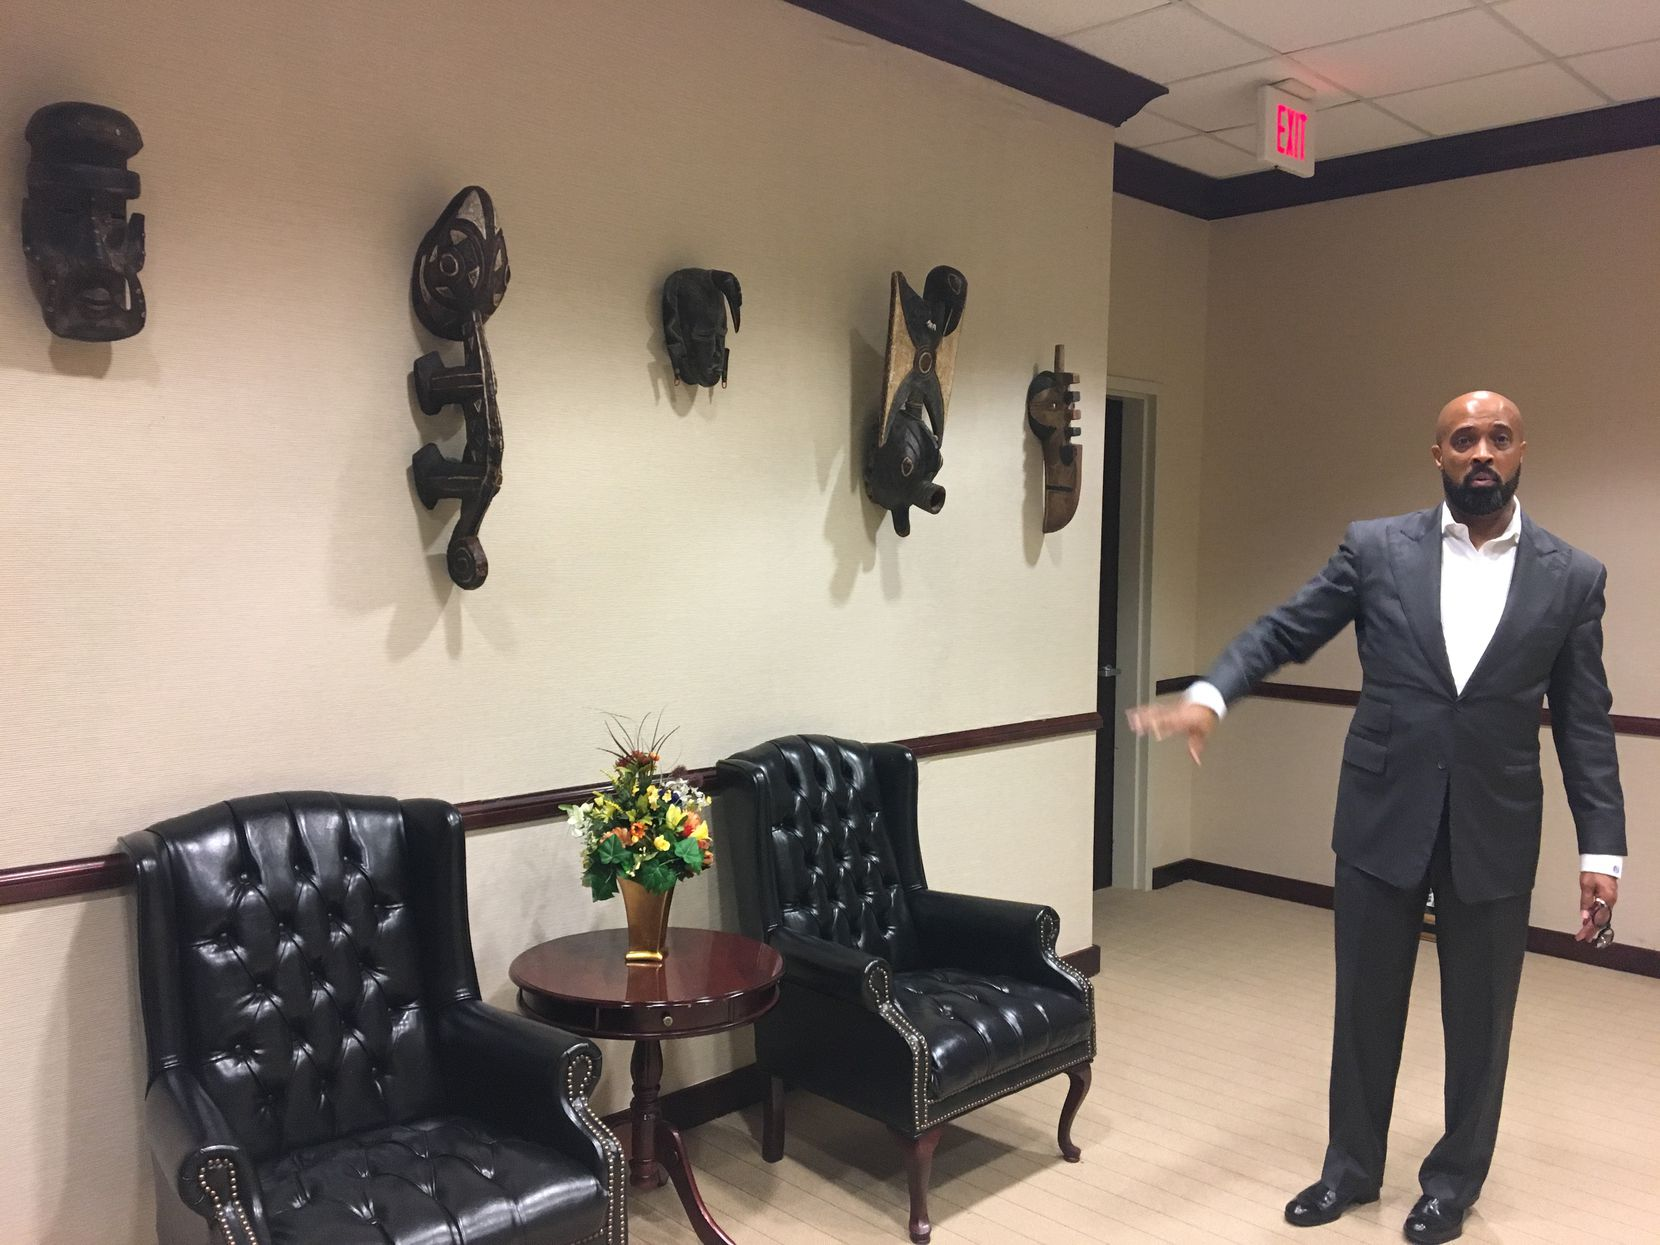 The Rev. Frederick Haynes III shows some of the African art pieces that Dallas County Commissioner John Wiley Price donated to his Friendship-West Baptist Church.